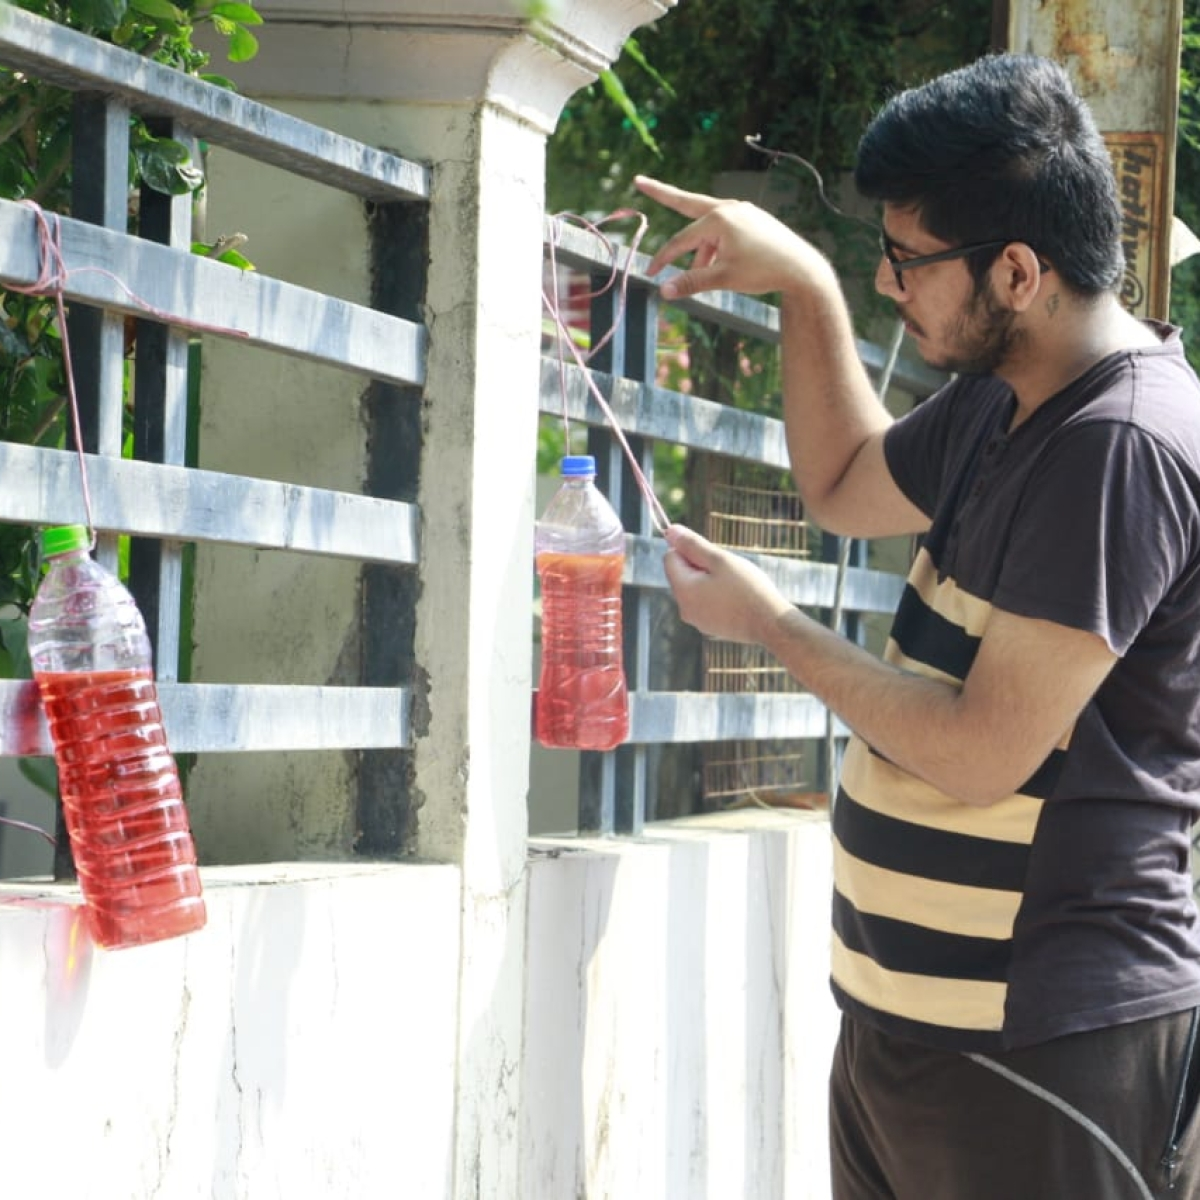 Trend in Indore: Hanging bottle of red liquid outside homes to stop dogs from pooping